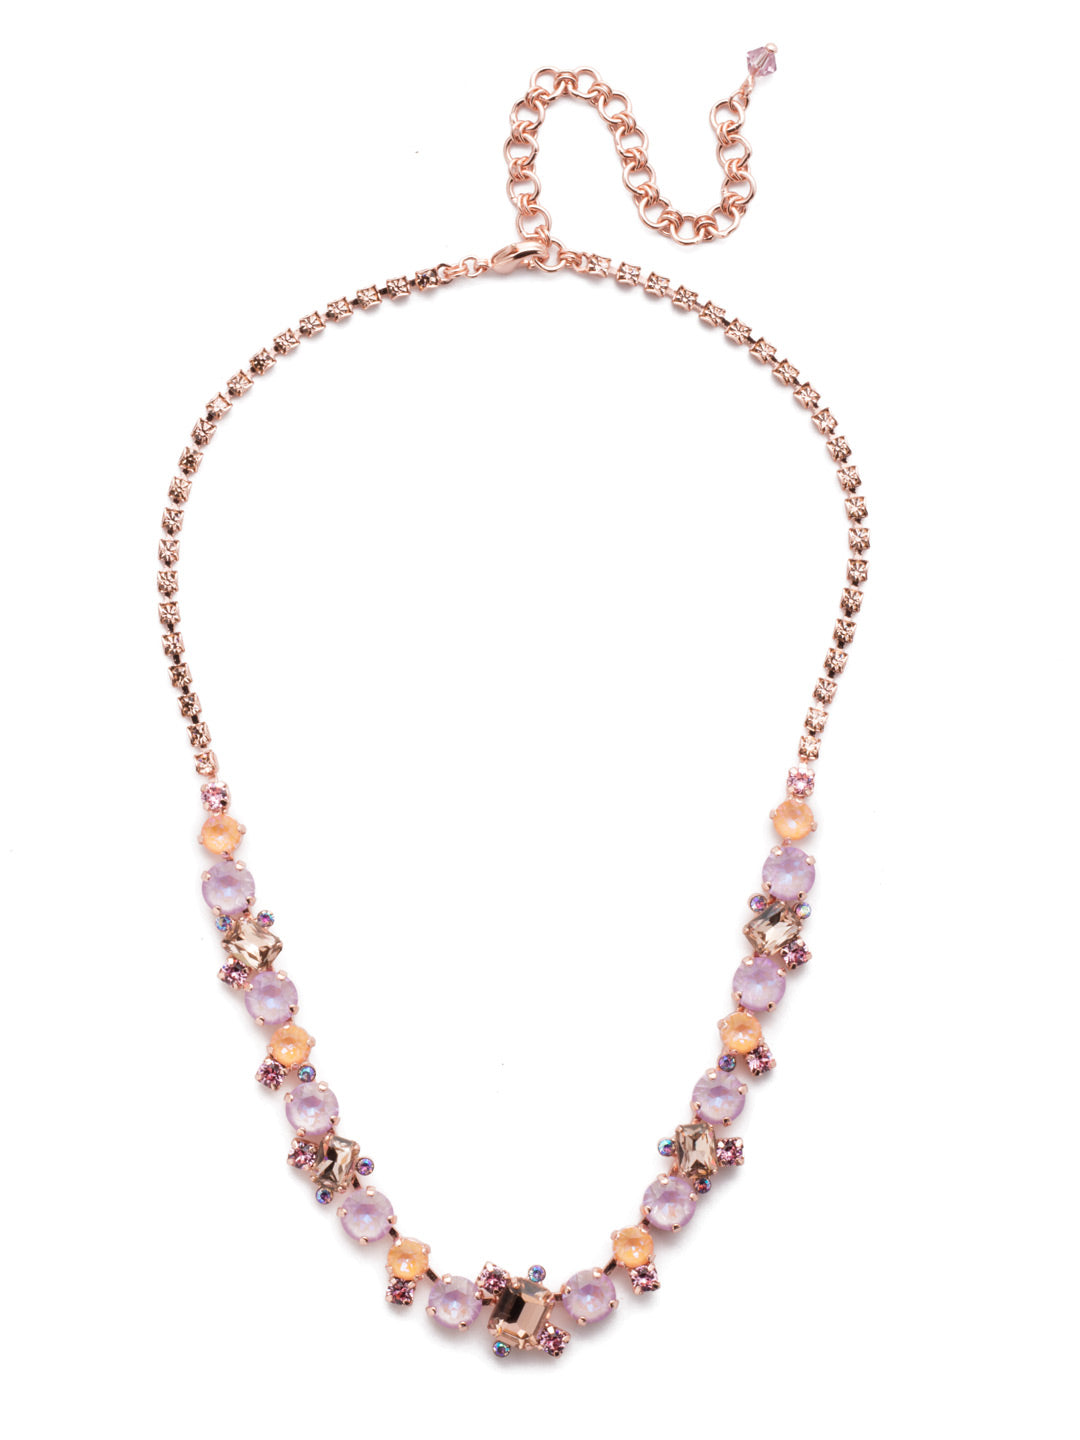 Sophisticated Tennis Necklace - NDK17RGLVP